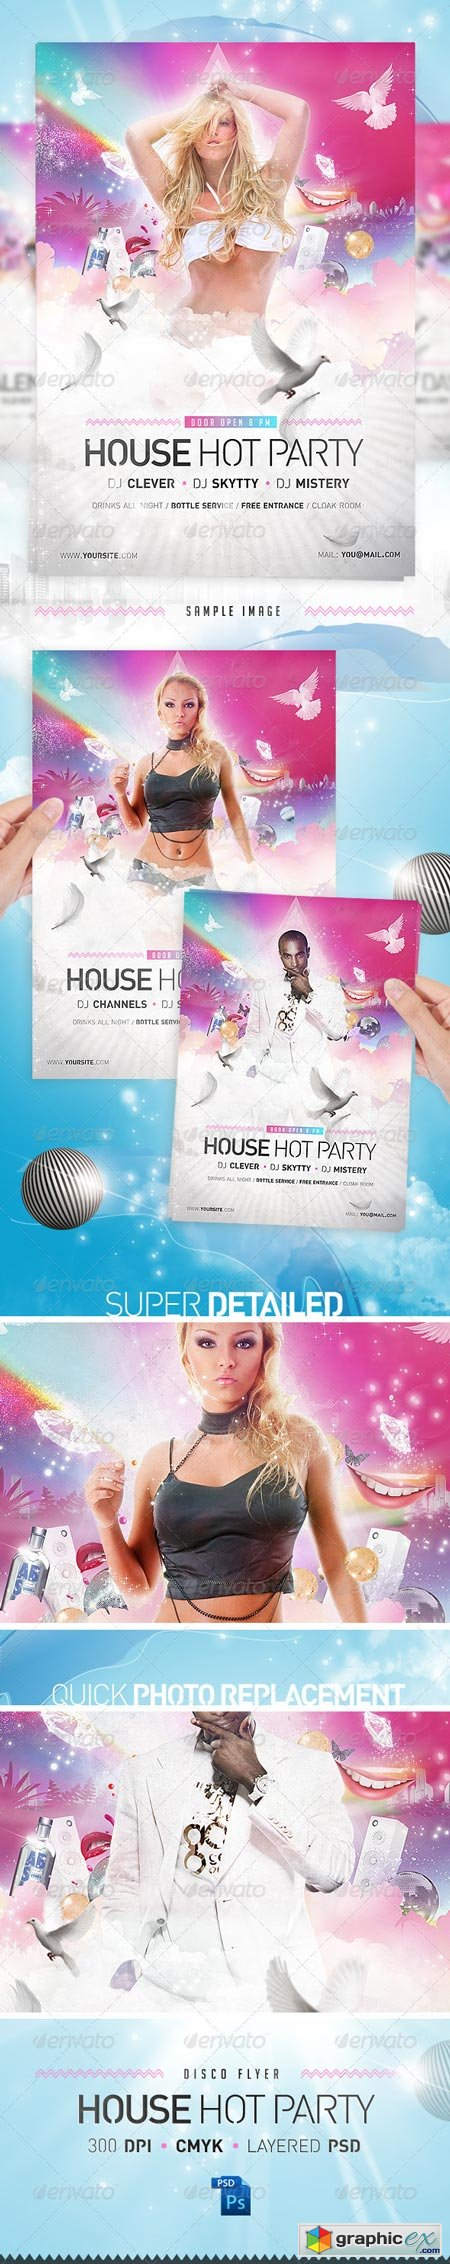 House Party Disco Flyer Template 1448512